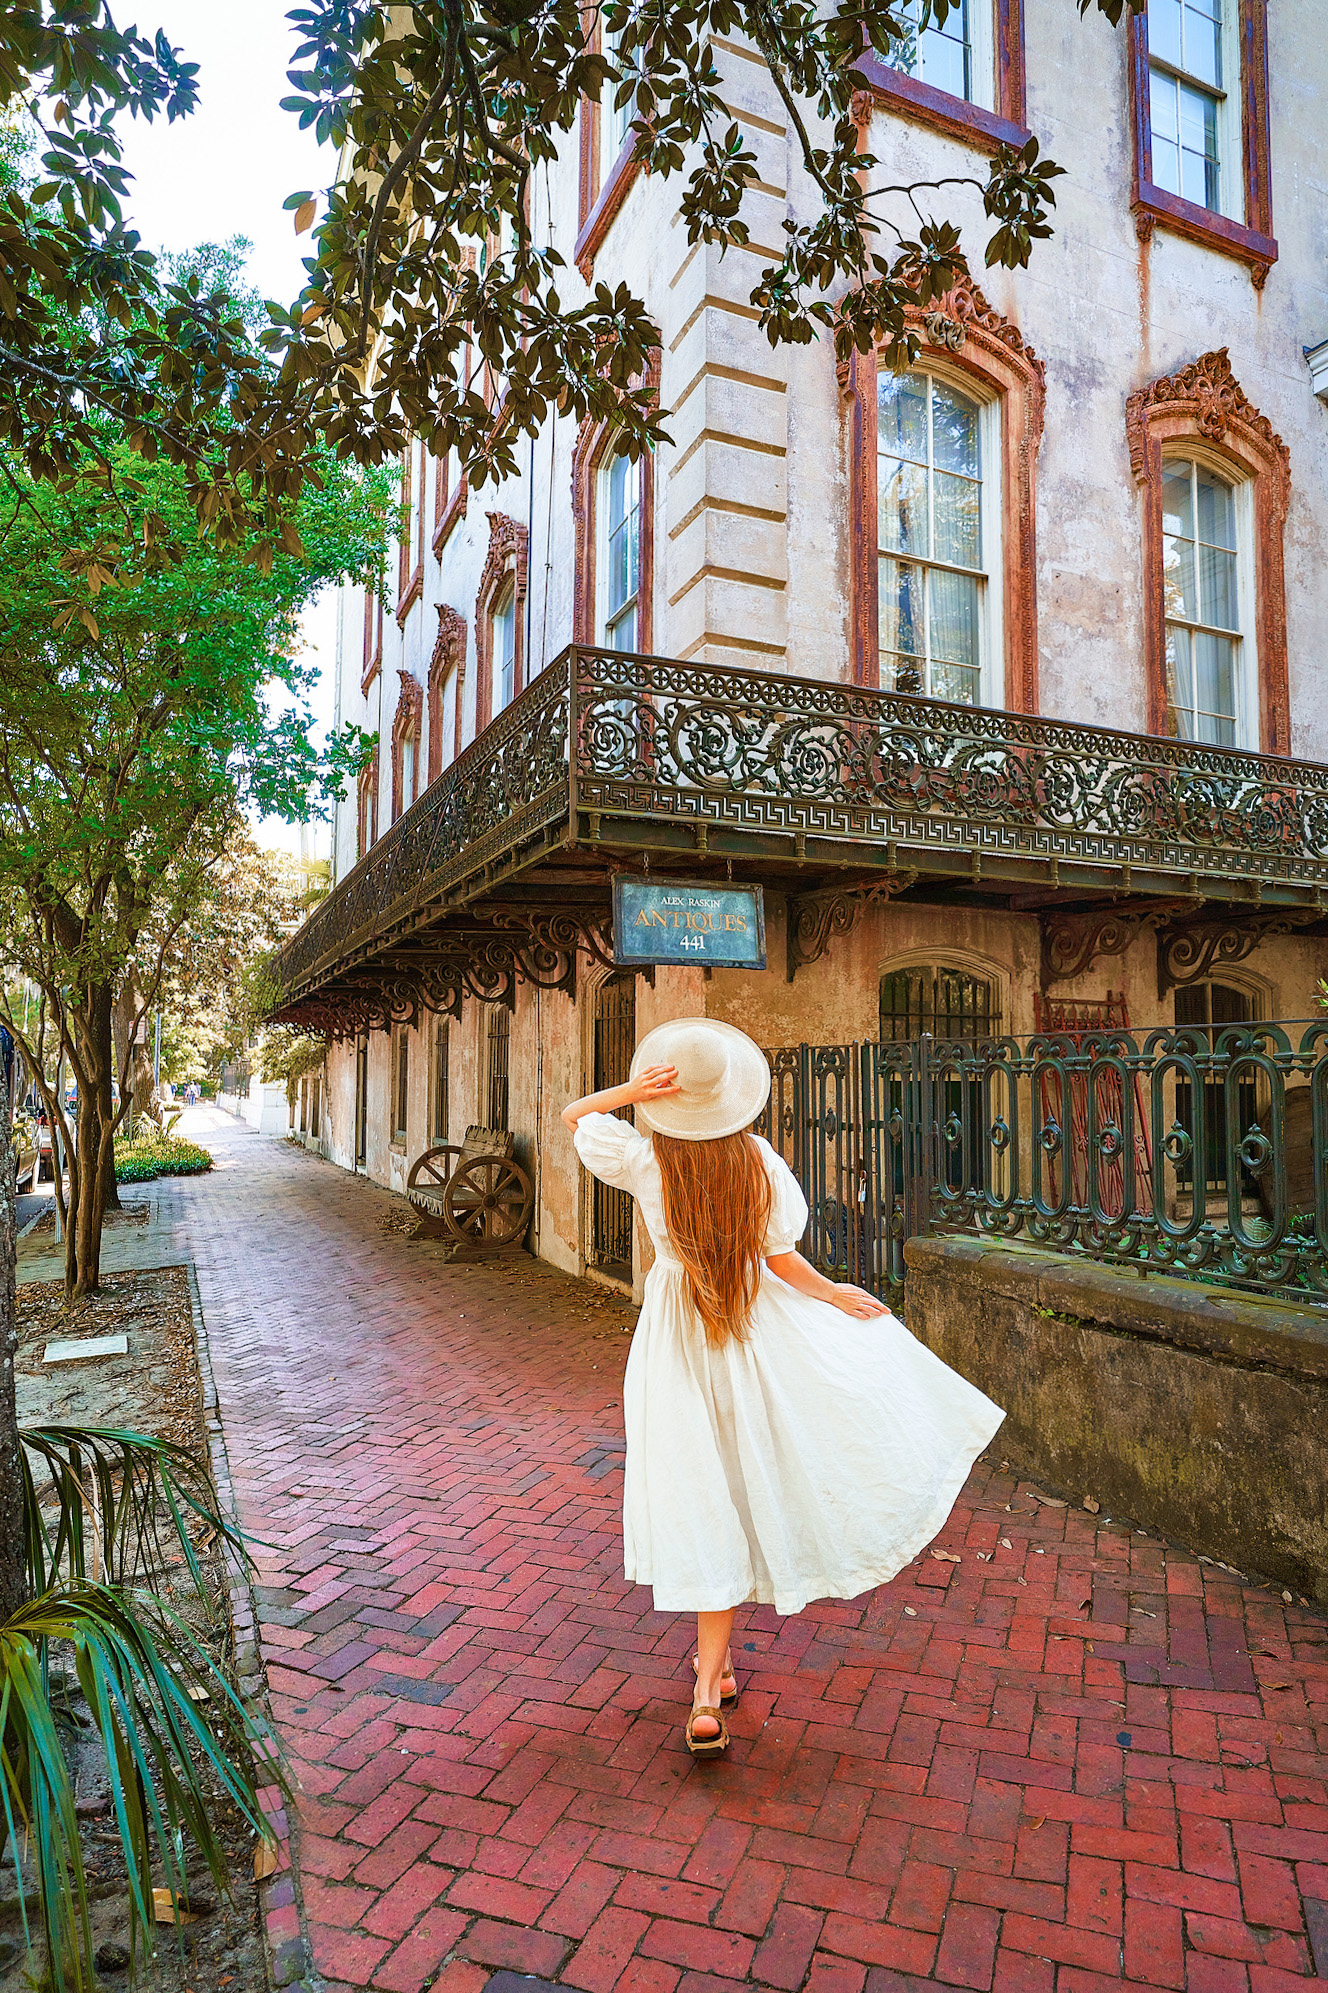 A woman in a white sundress with long hair and a white sunhat standing outside of a run down mansion. She is standing on a brick sidewalk looking up at the building. The building has stained plaster, rusted window trimmings, and a rusted wrought iron balcony and gate.